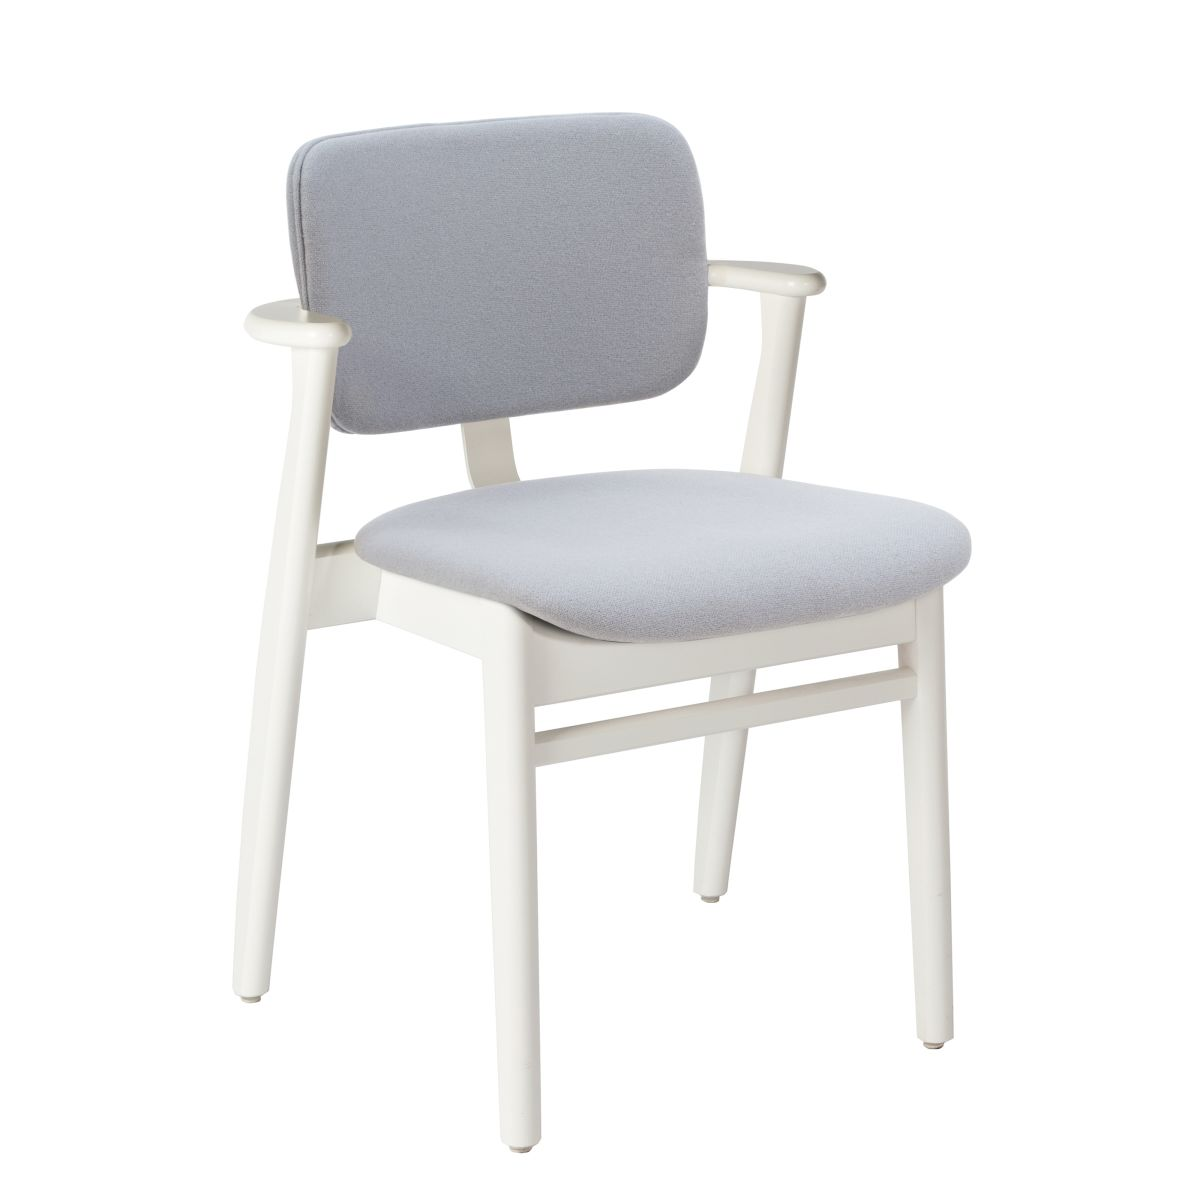 Domus Chair legs white laquered birch_seat back fabric grey